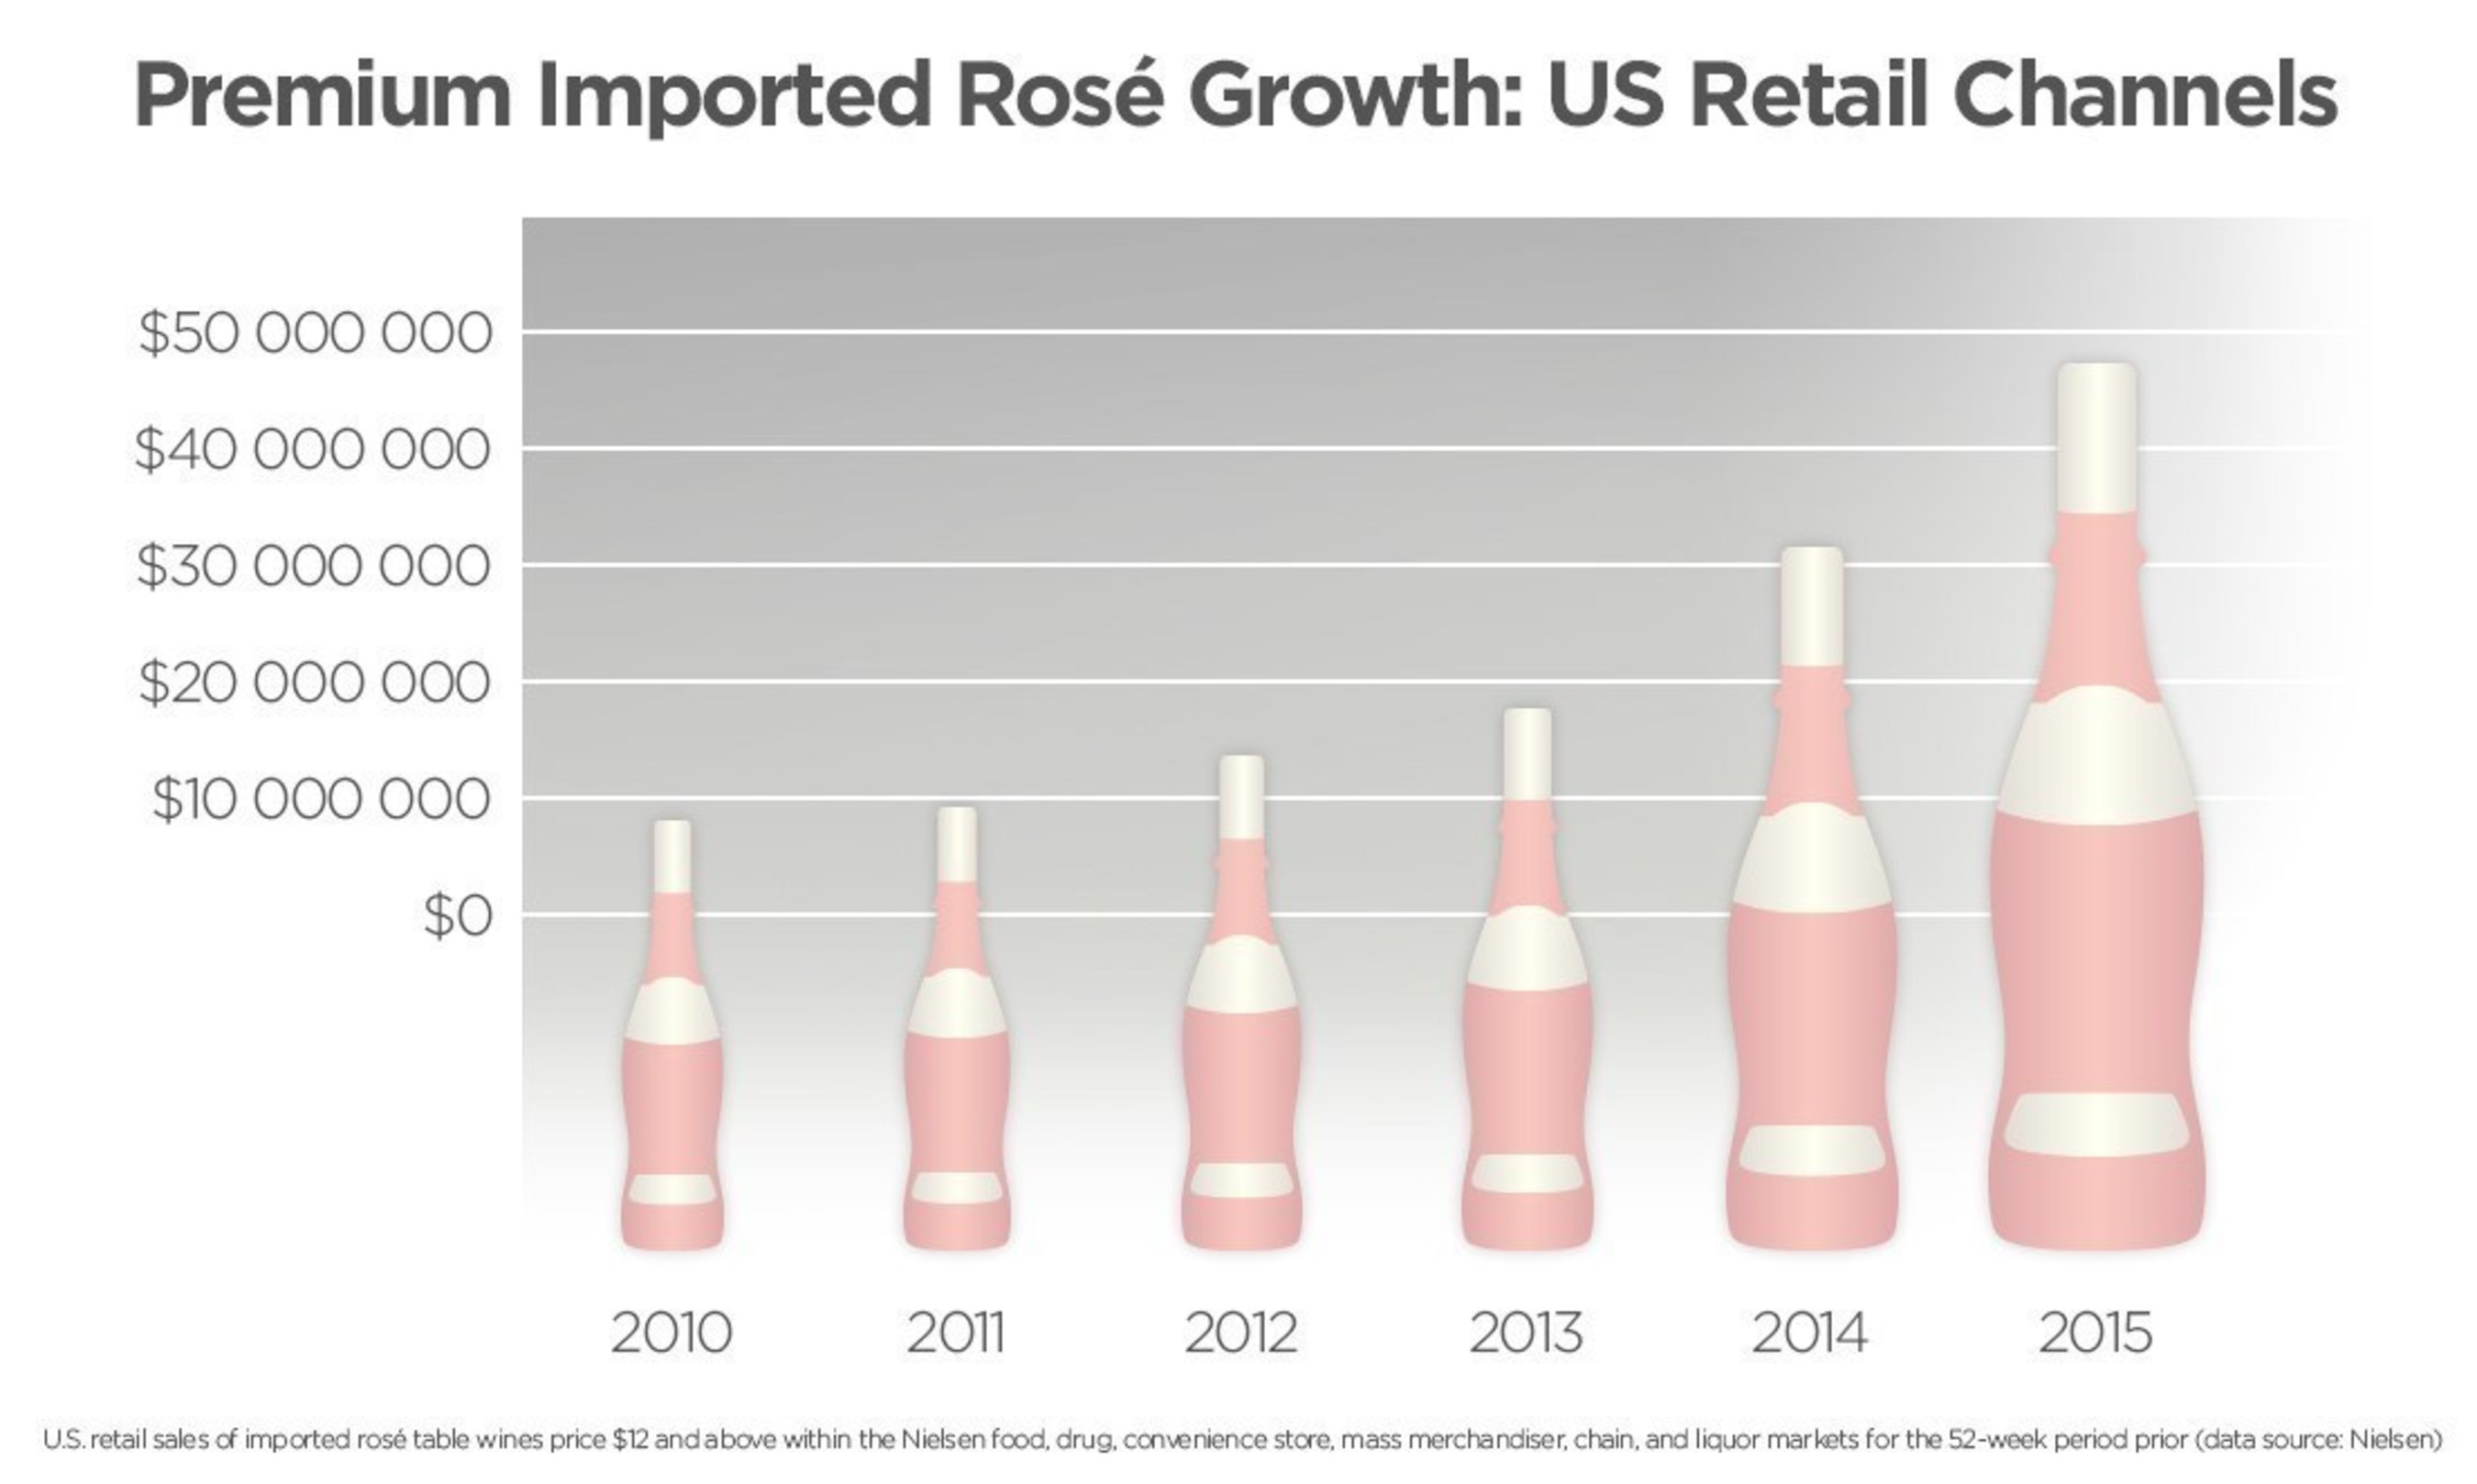 Premium Imported Rose Growth: US Retail Channels. Source: Nielsen.